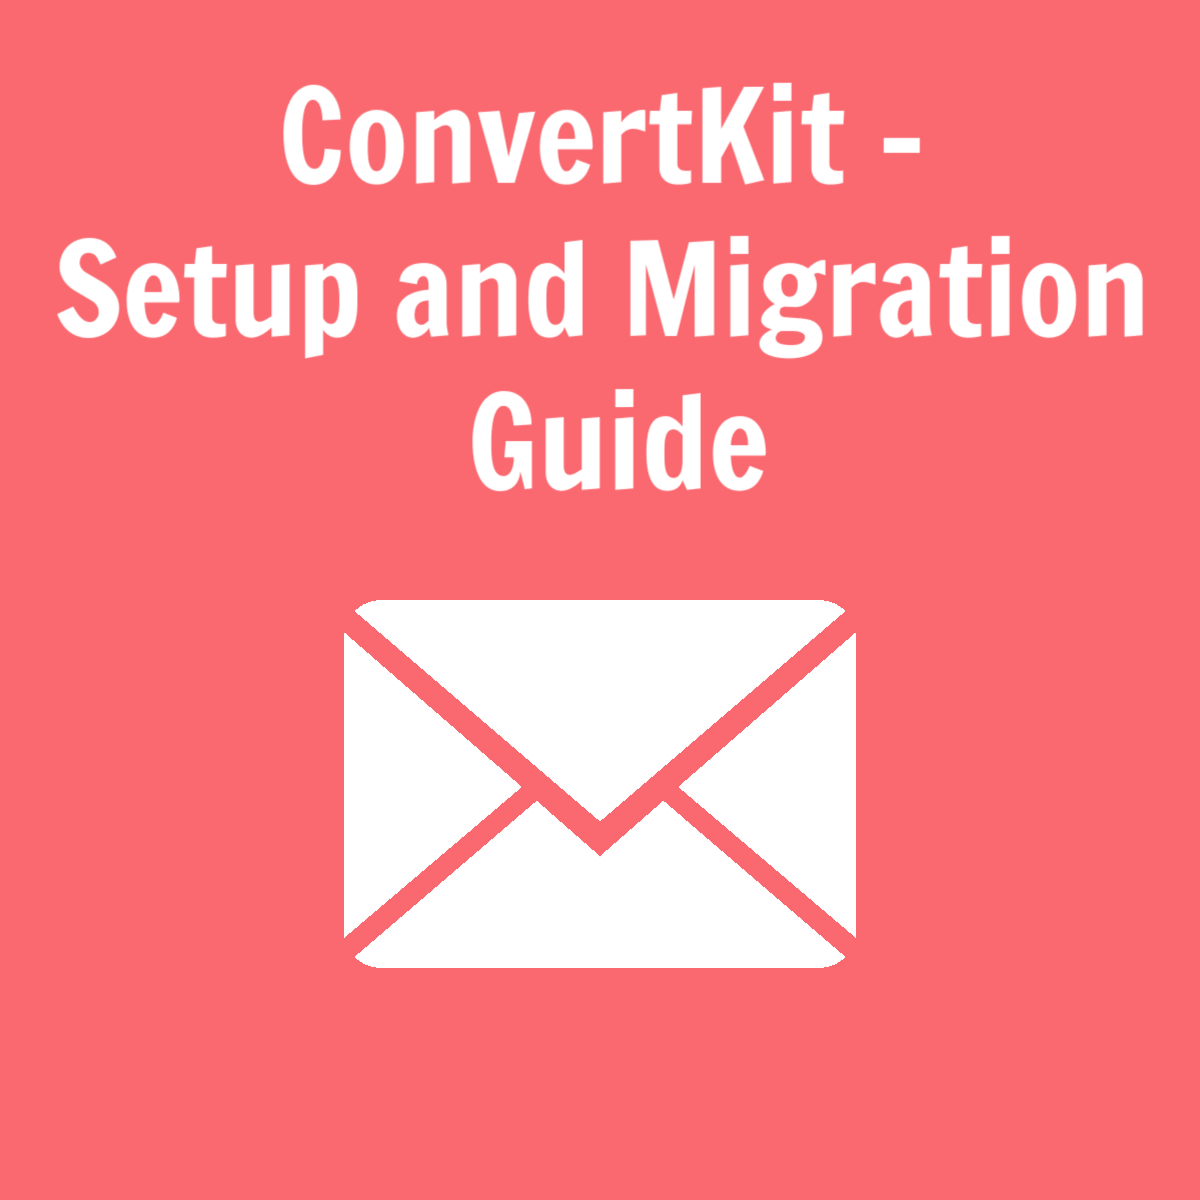 convertkit setup and migration guide featured image